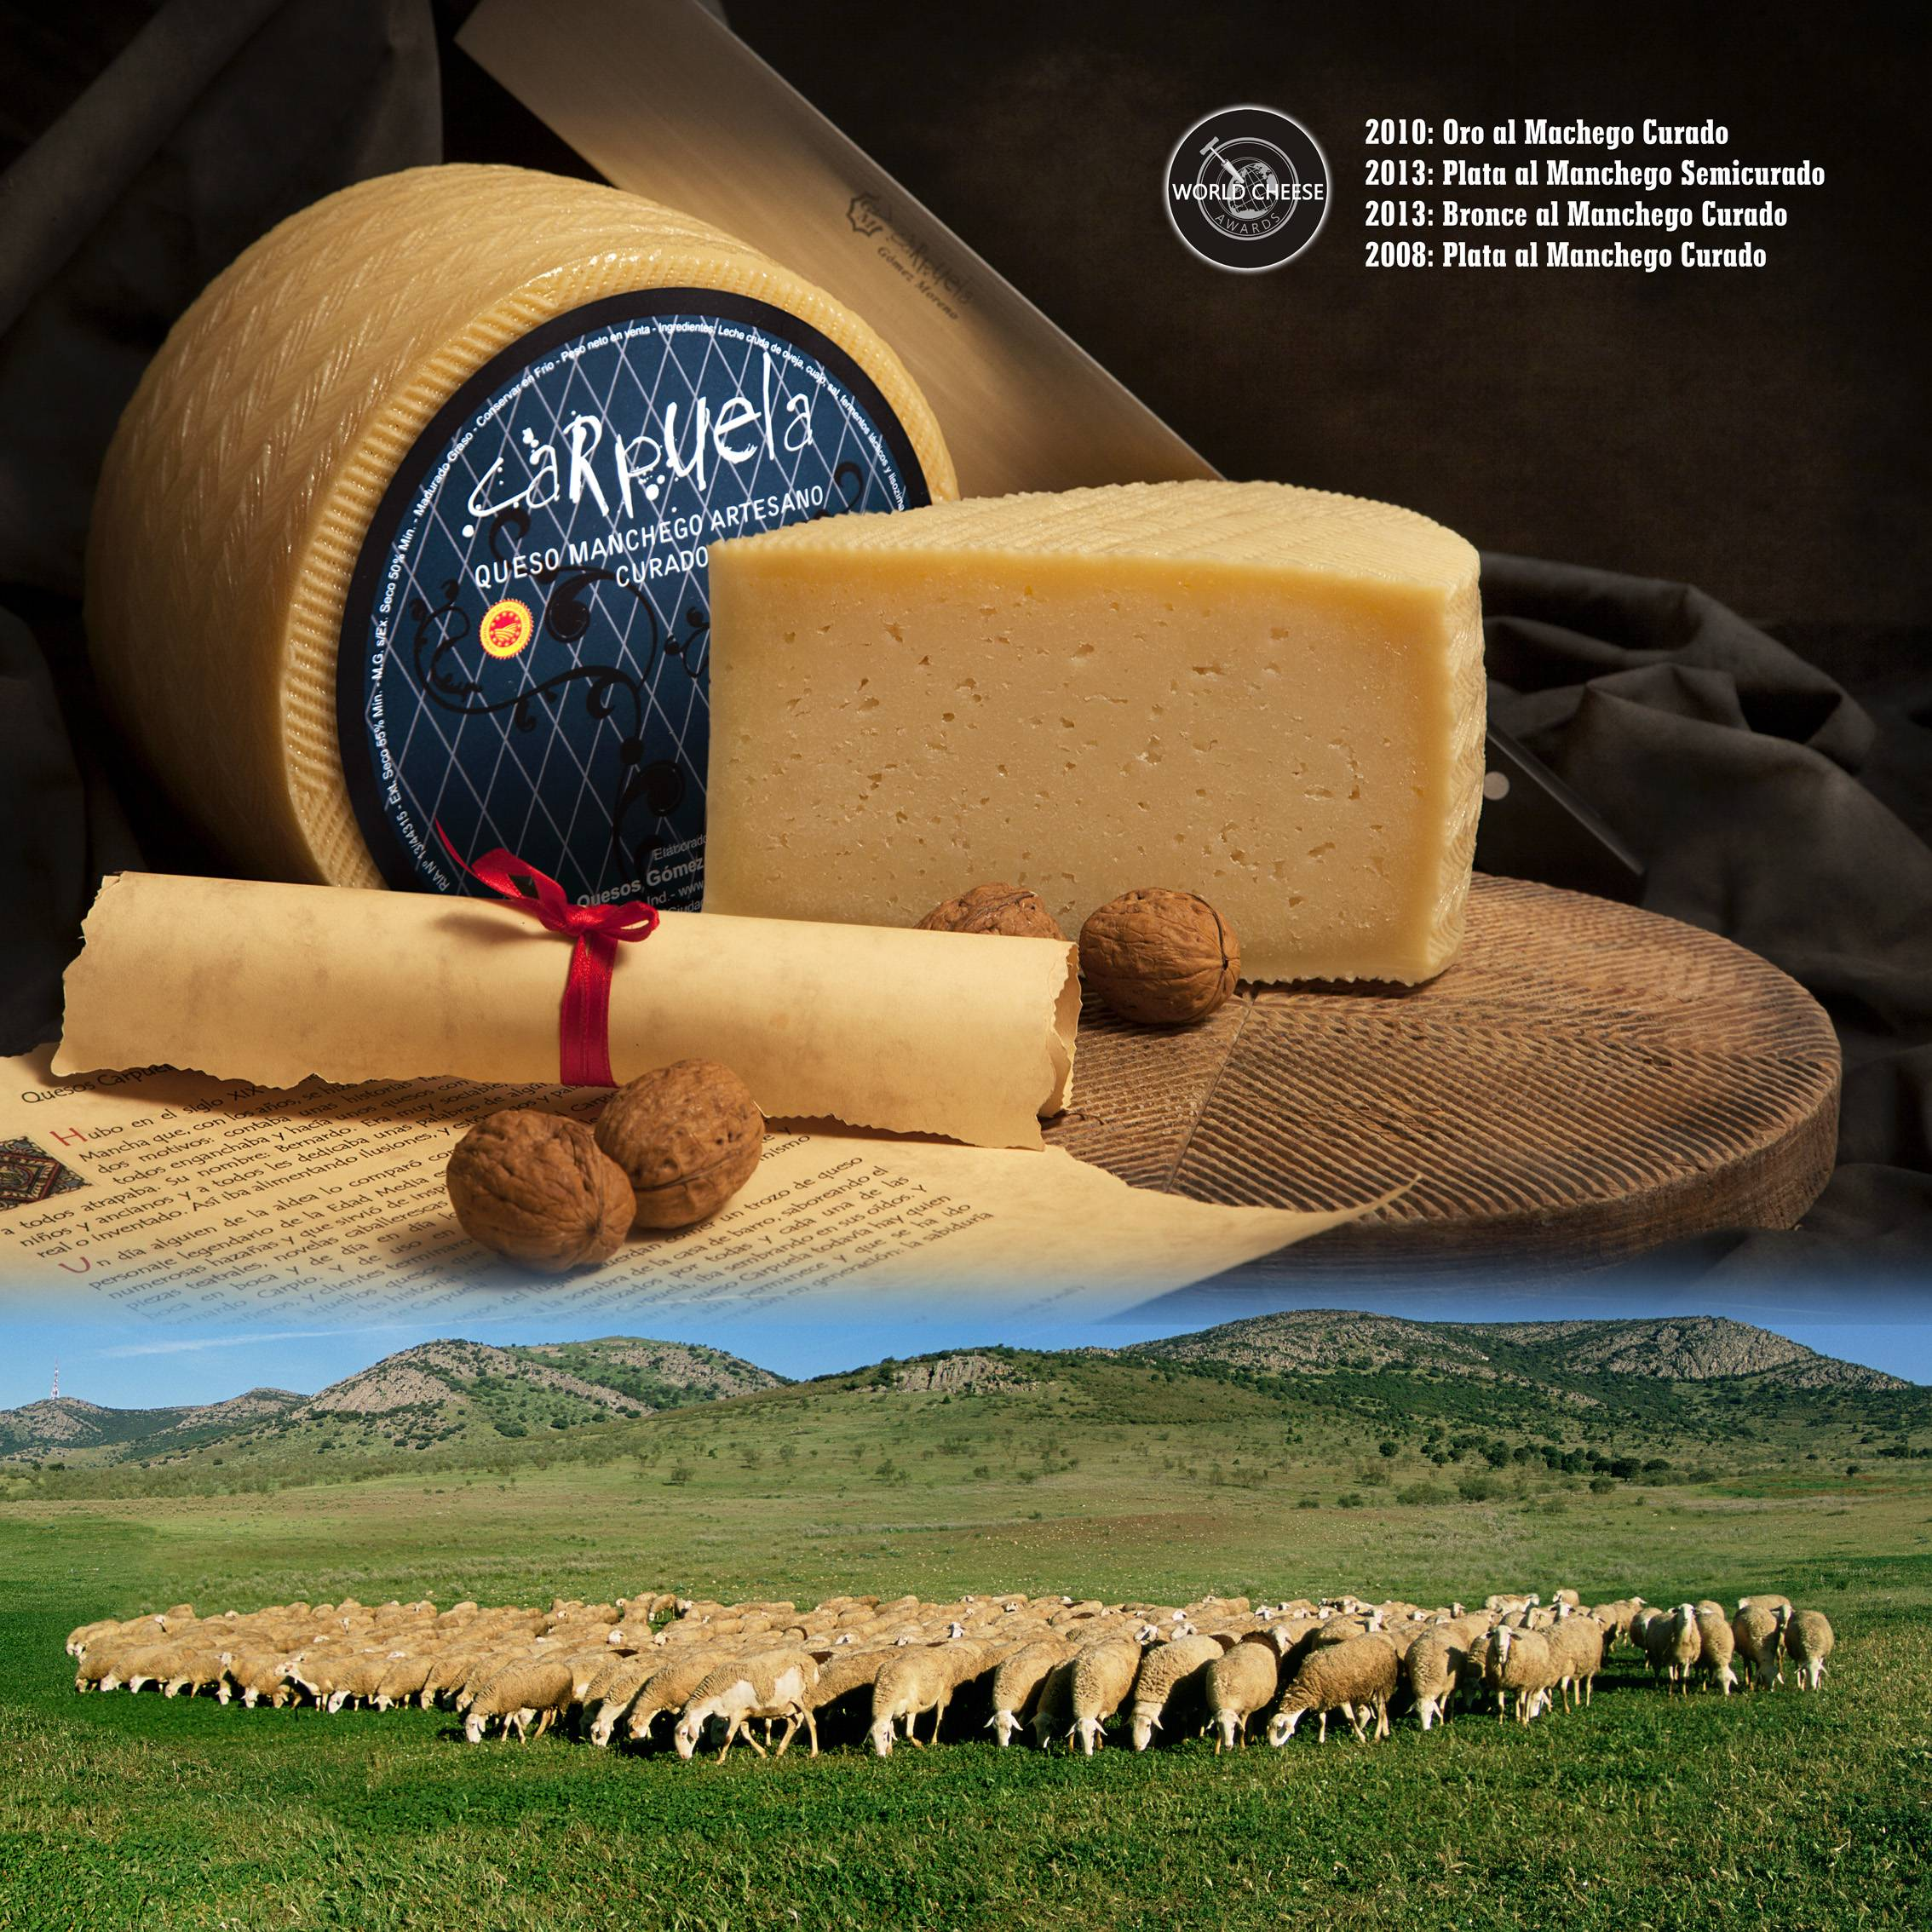 poster quesos gomez moreno en Herencia - Quesos Gómez Moreno premiado en el International Cheese  Awards 2019